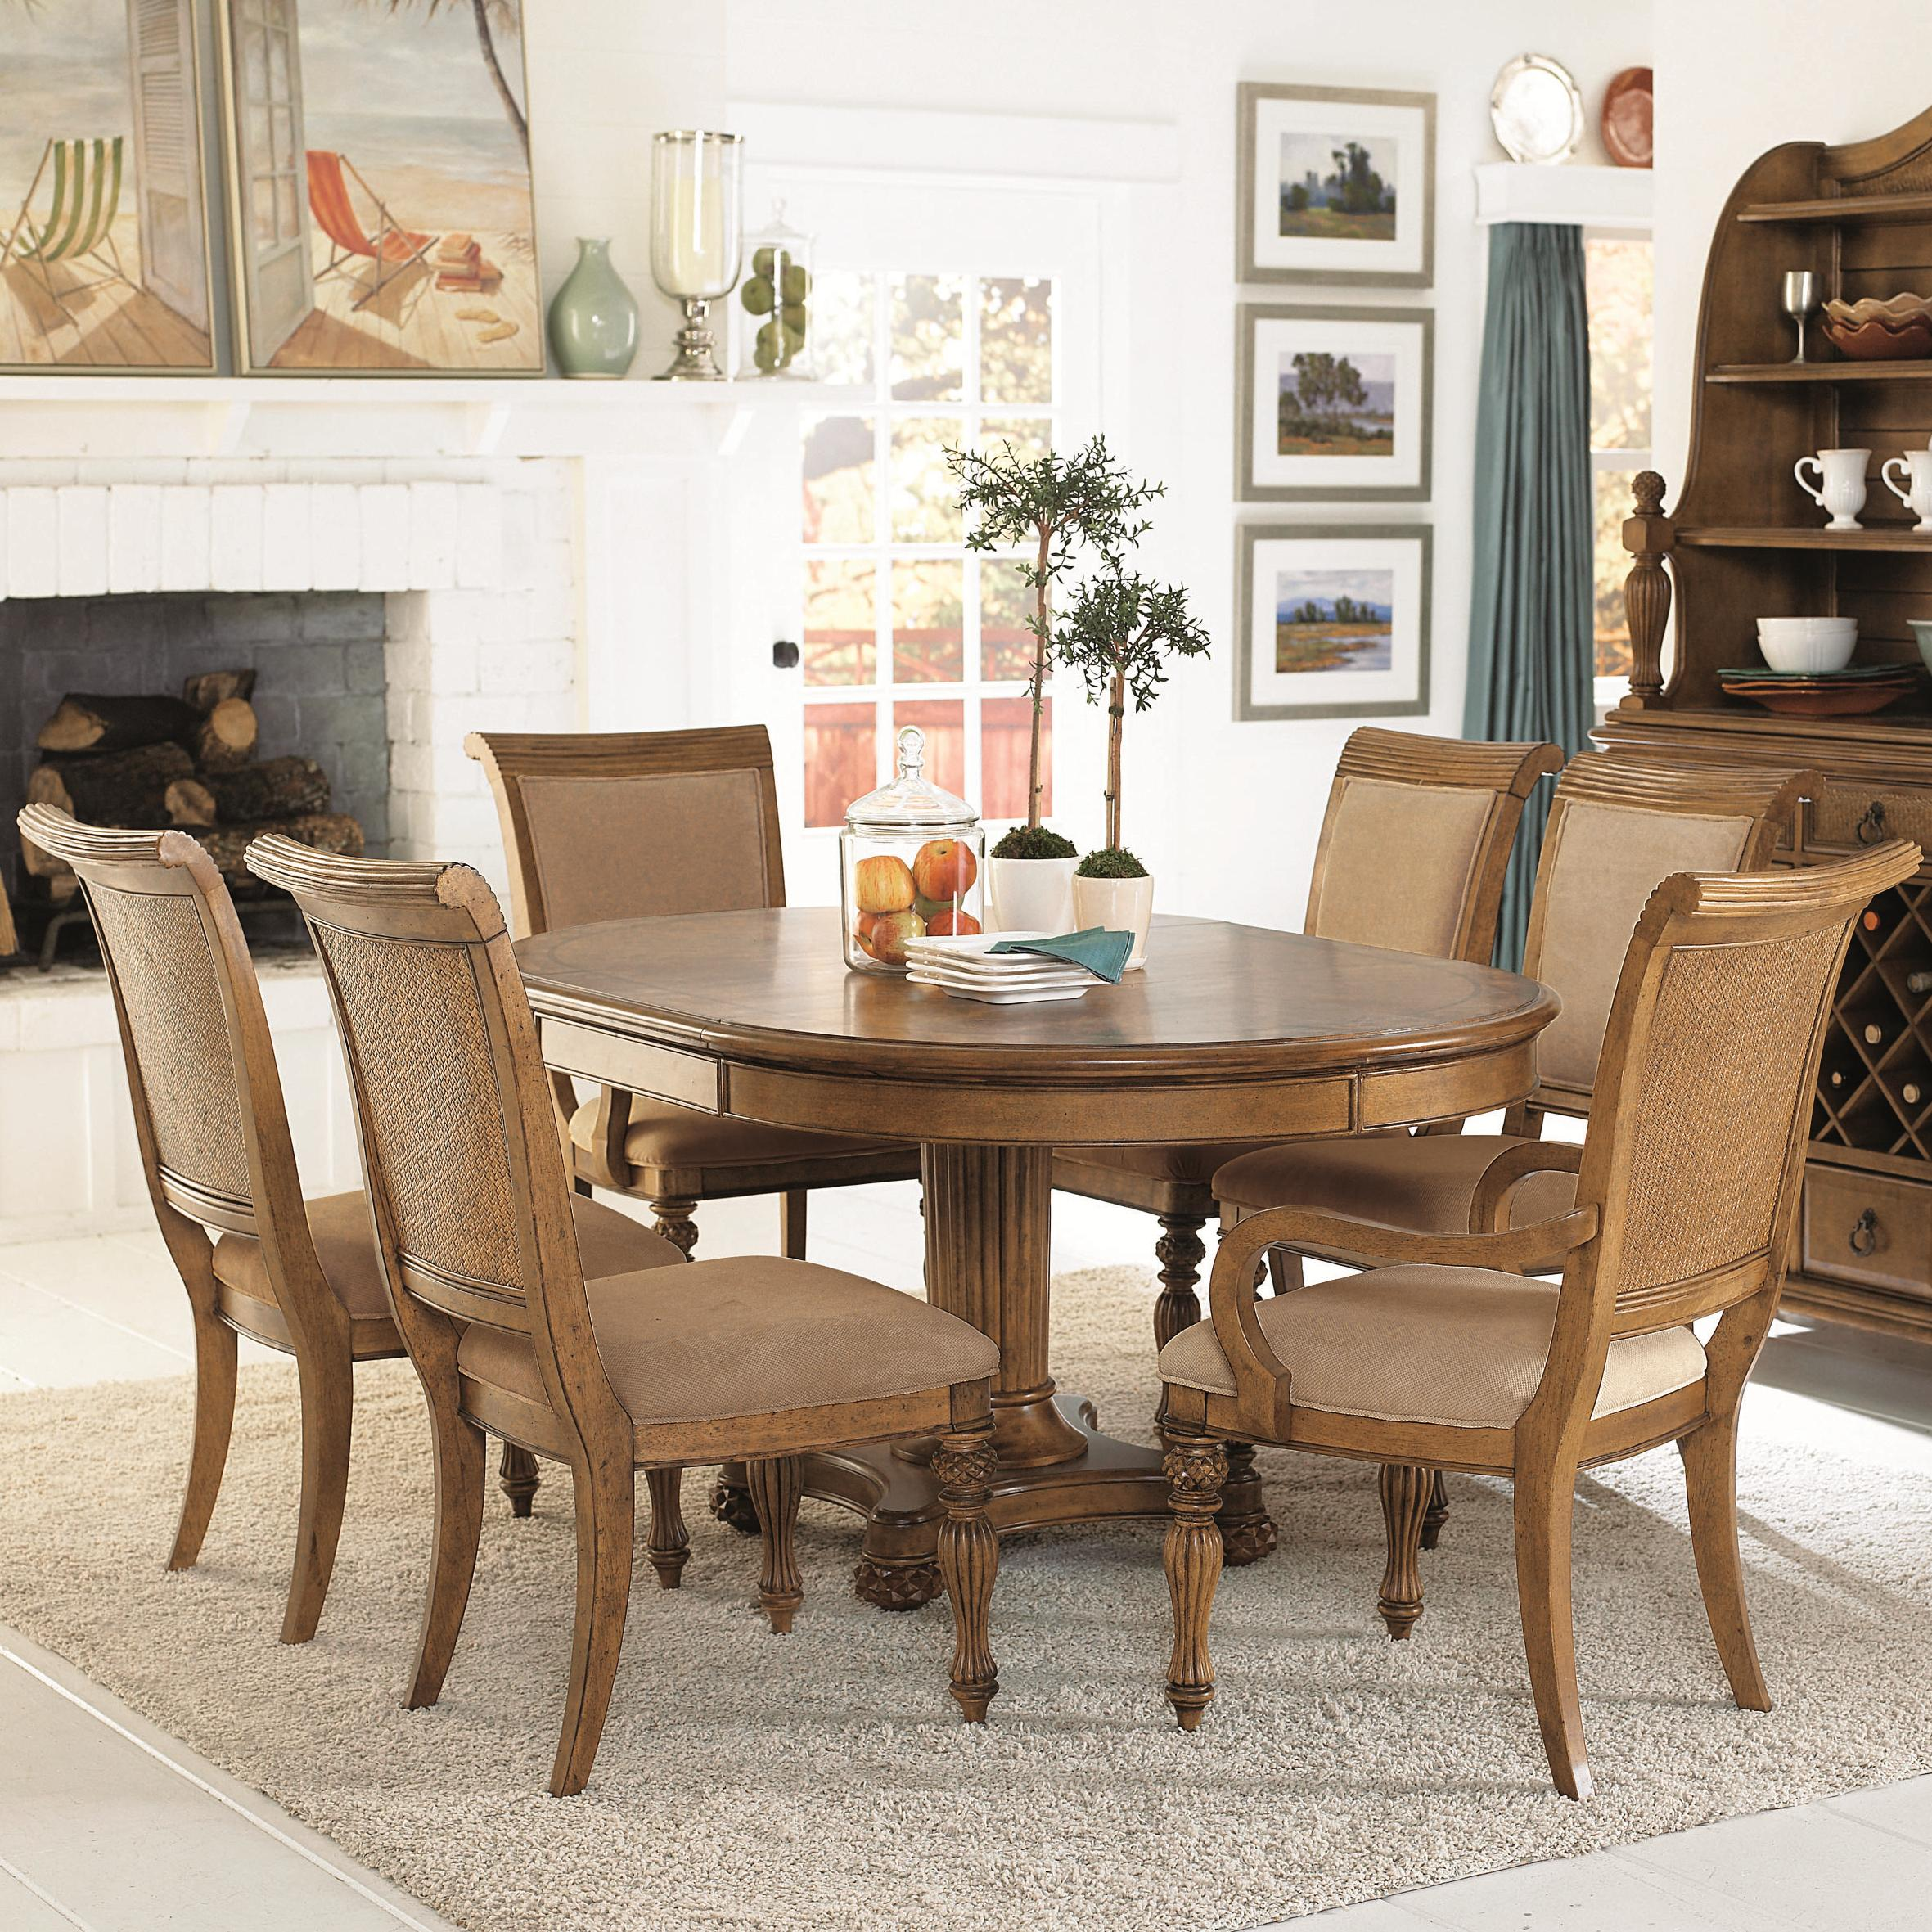 7 Piece Island Inspired Single Pedestal Table & Dining Arm Side